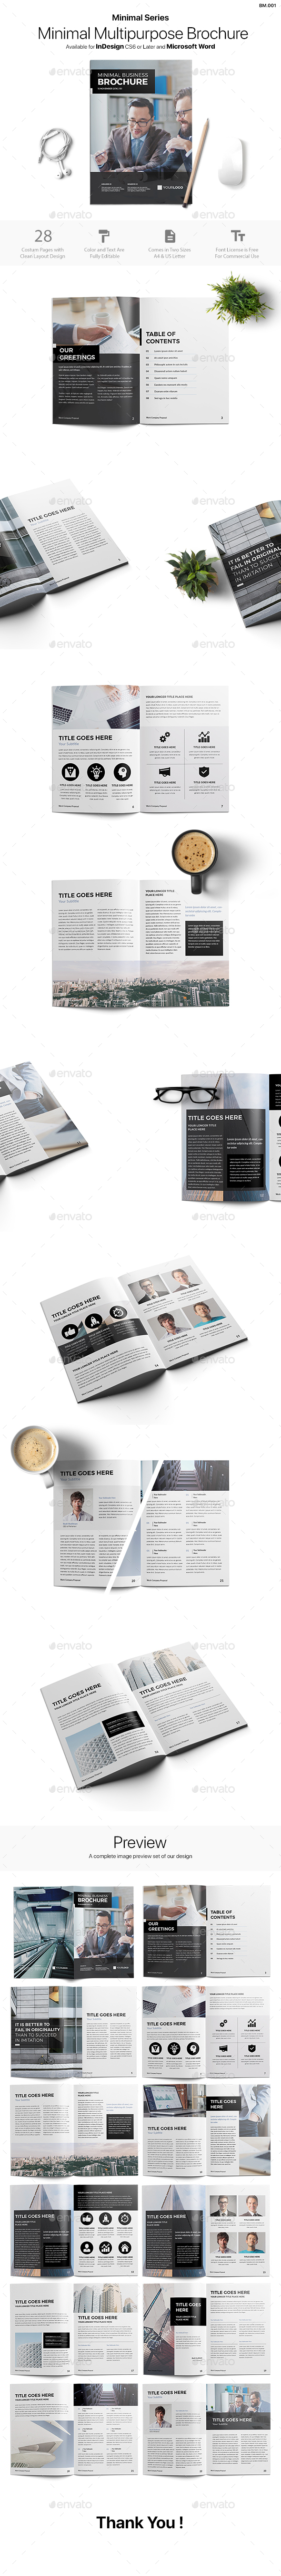 preview - Minimal Brochure Download